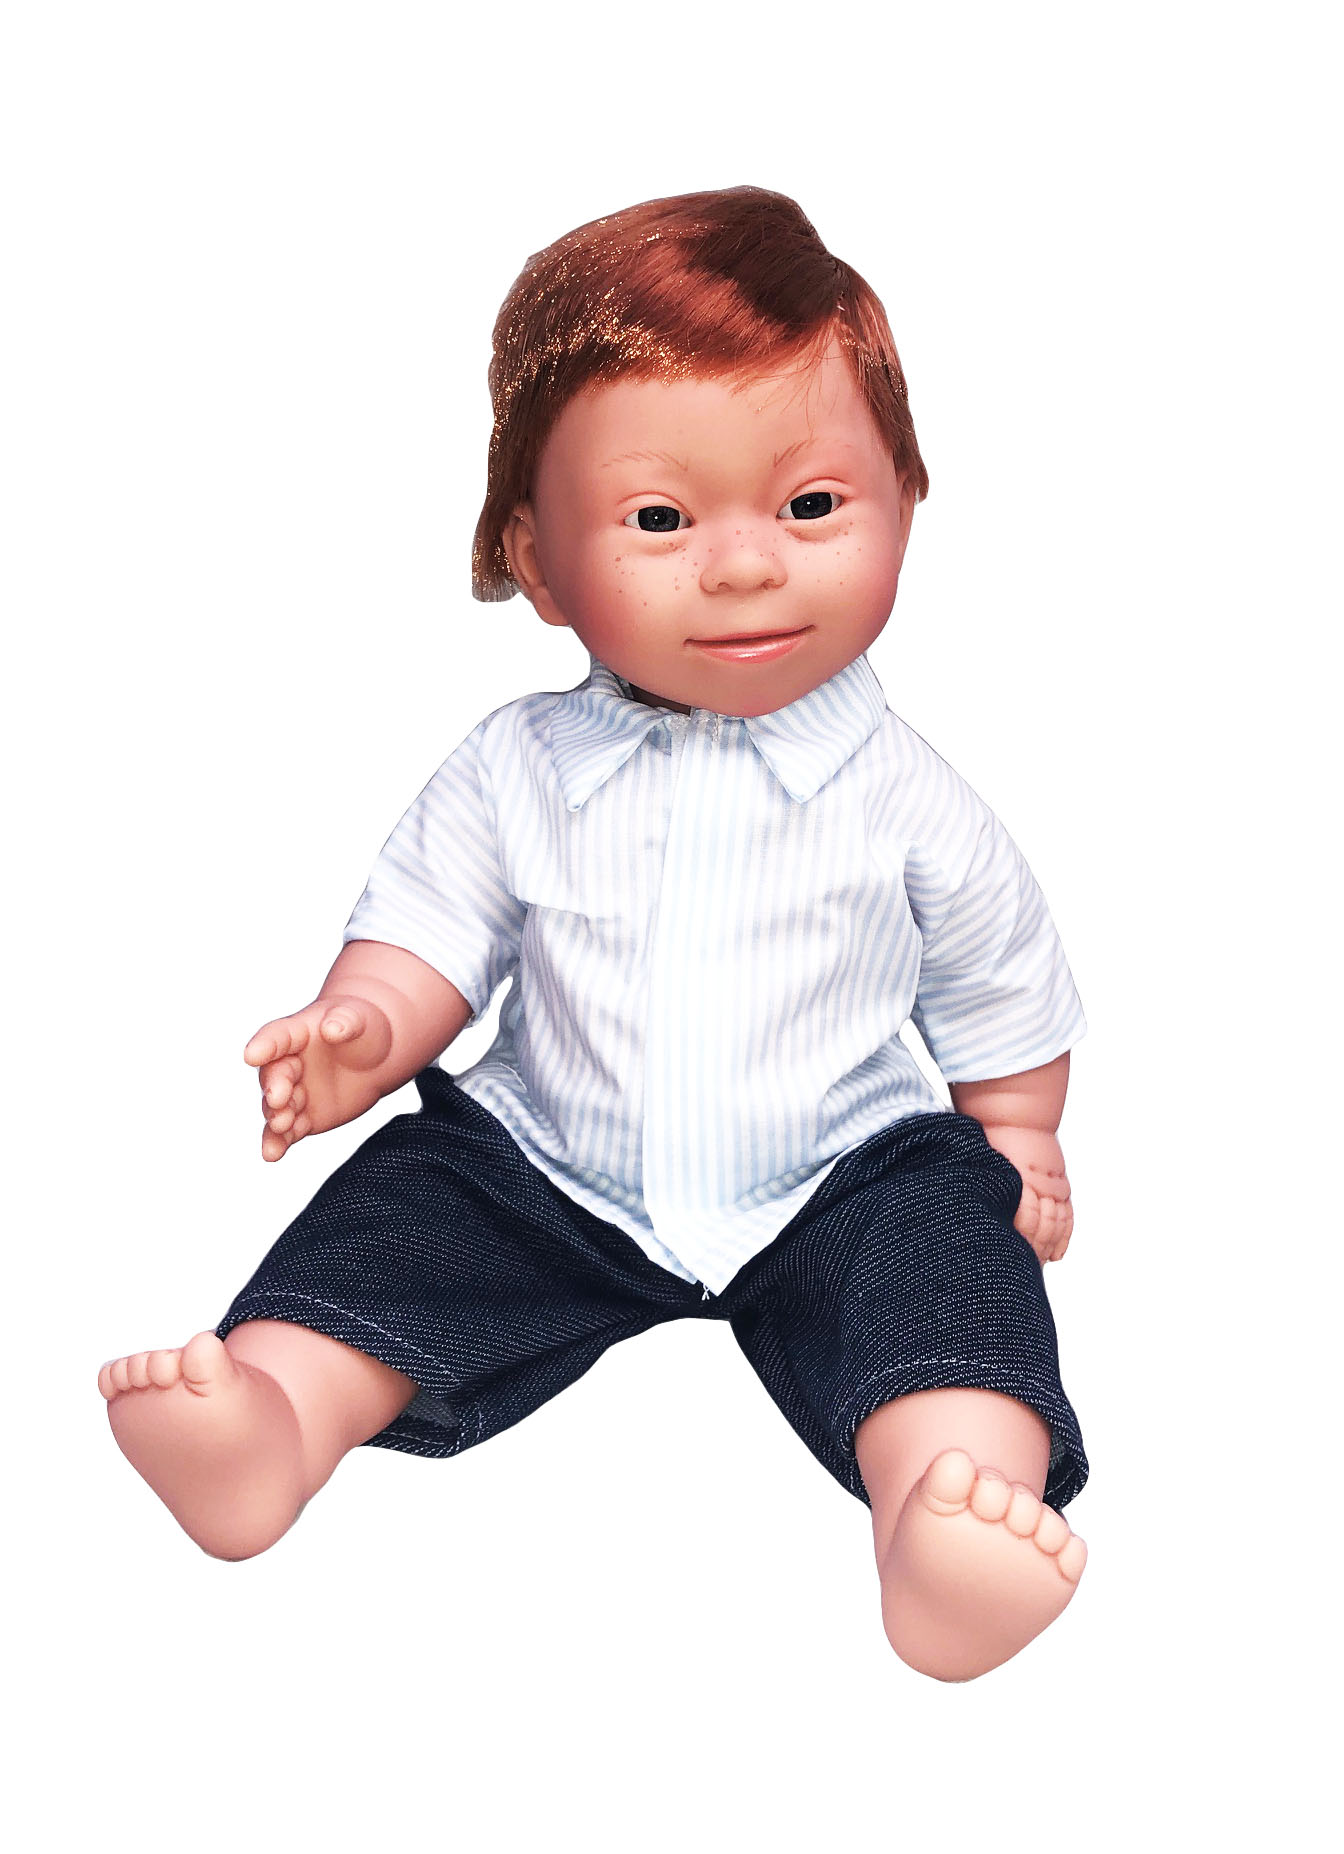 Red Haired Boy - Down Syndrome Doll